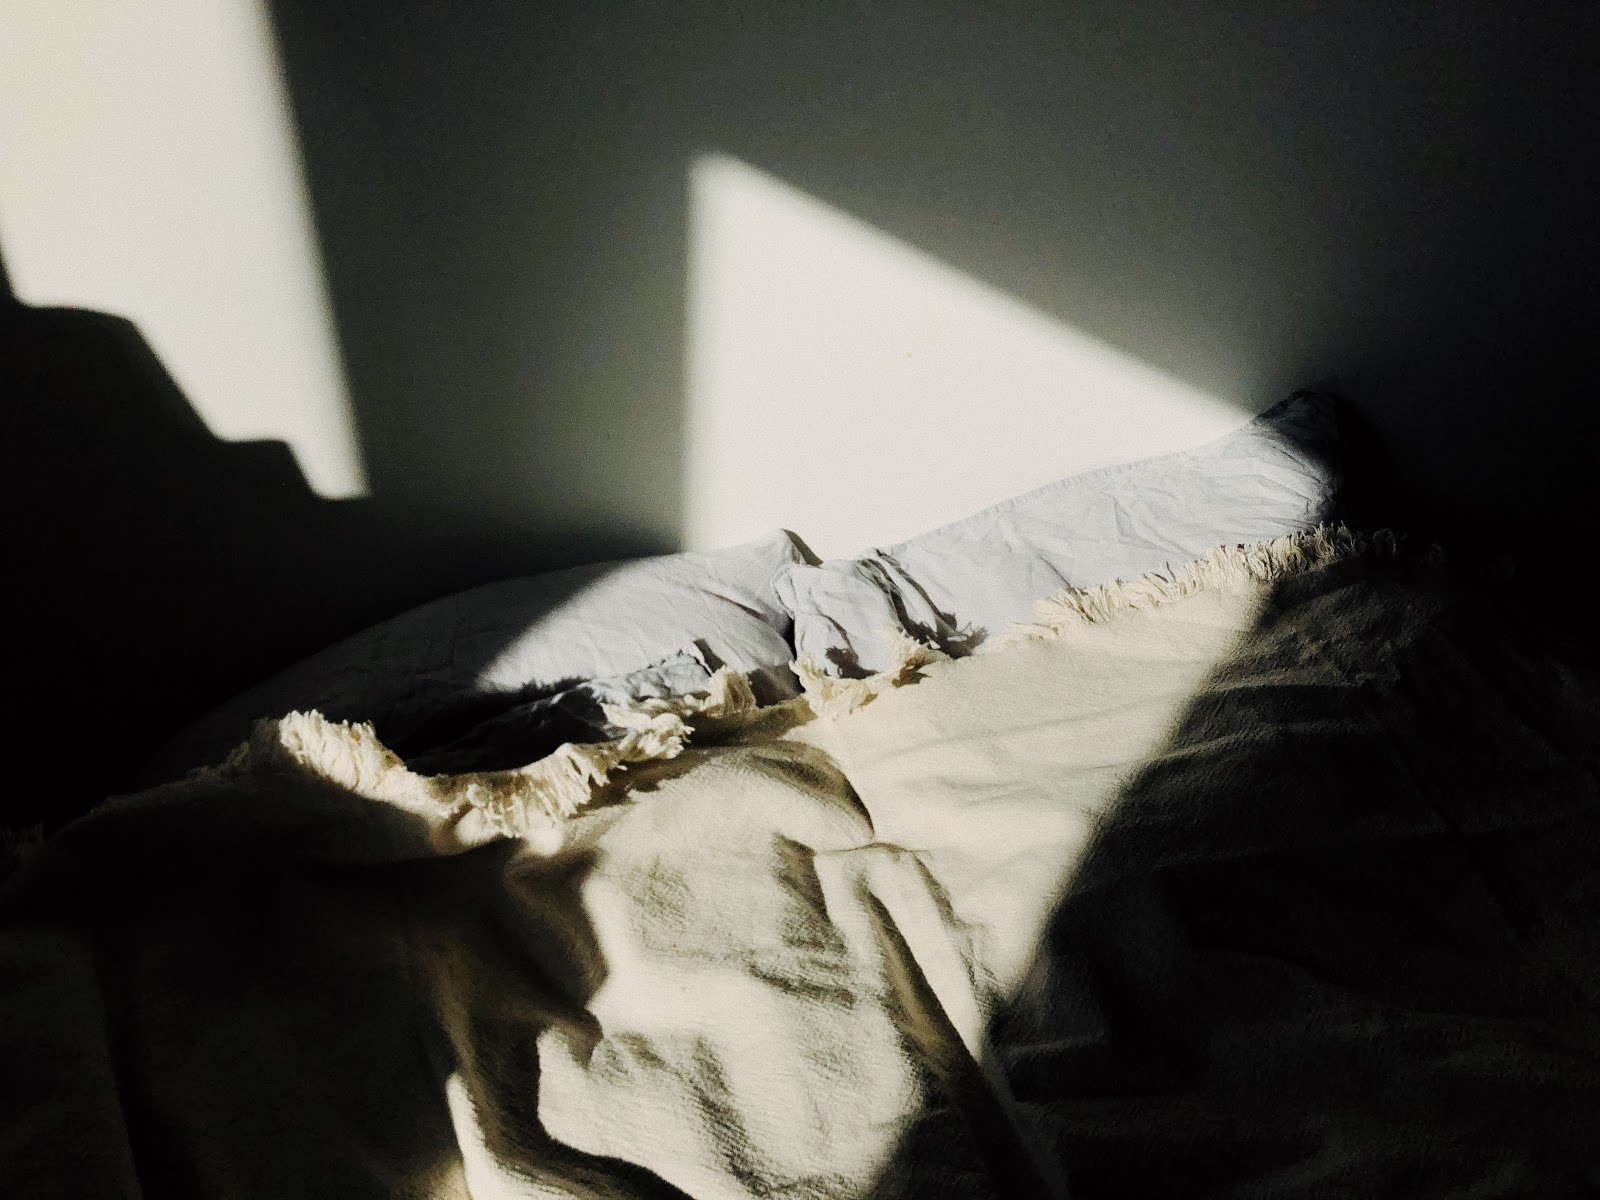 Blankets covered in shadows